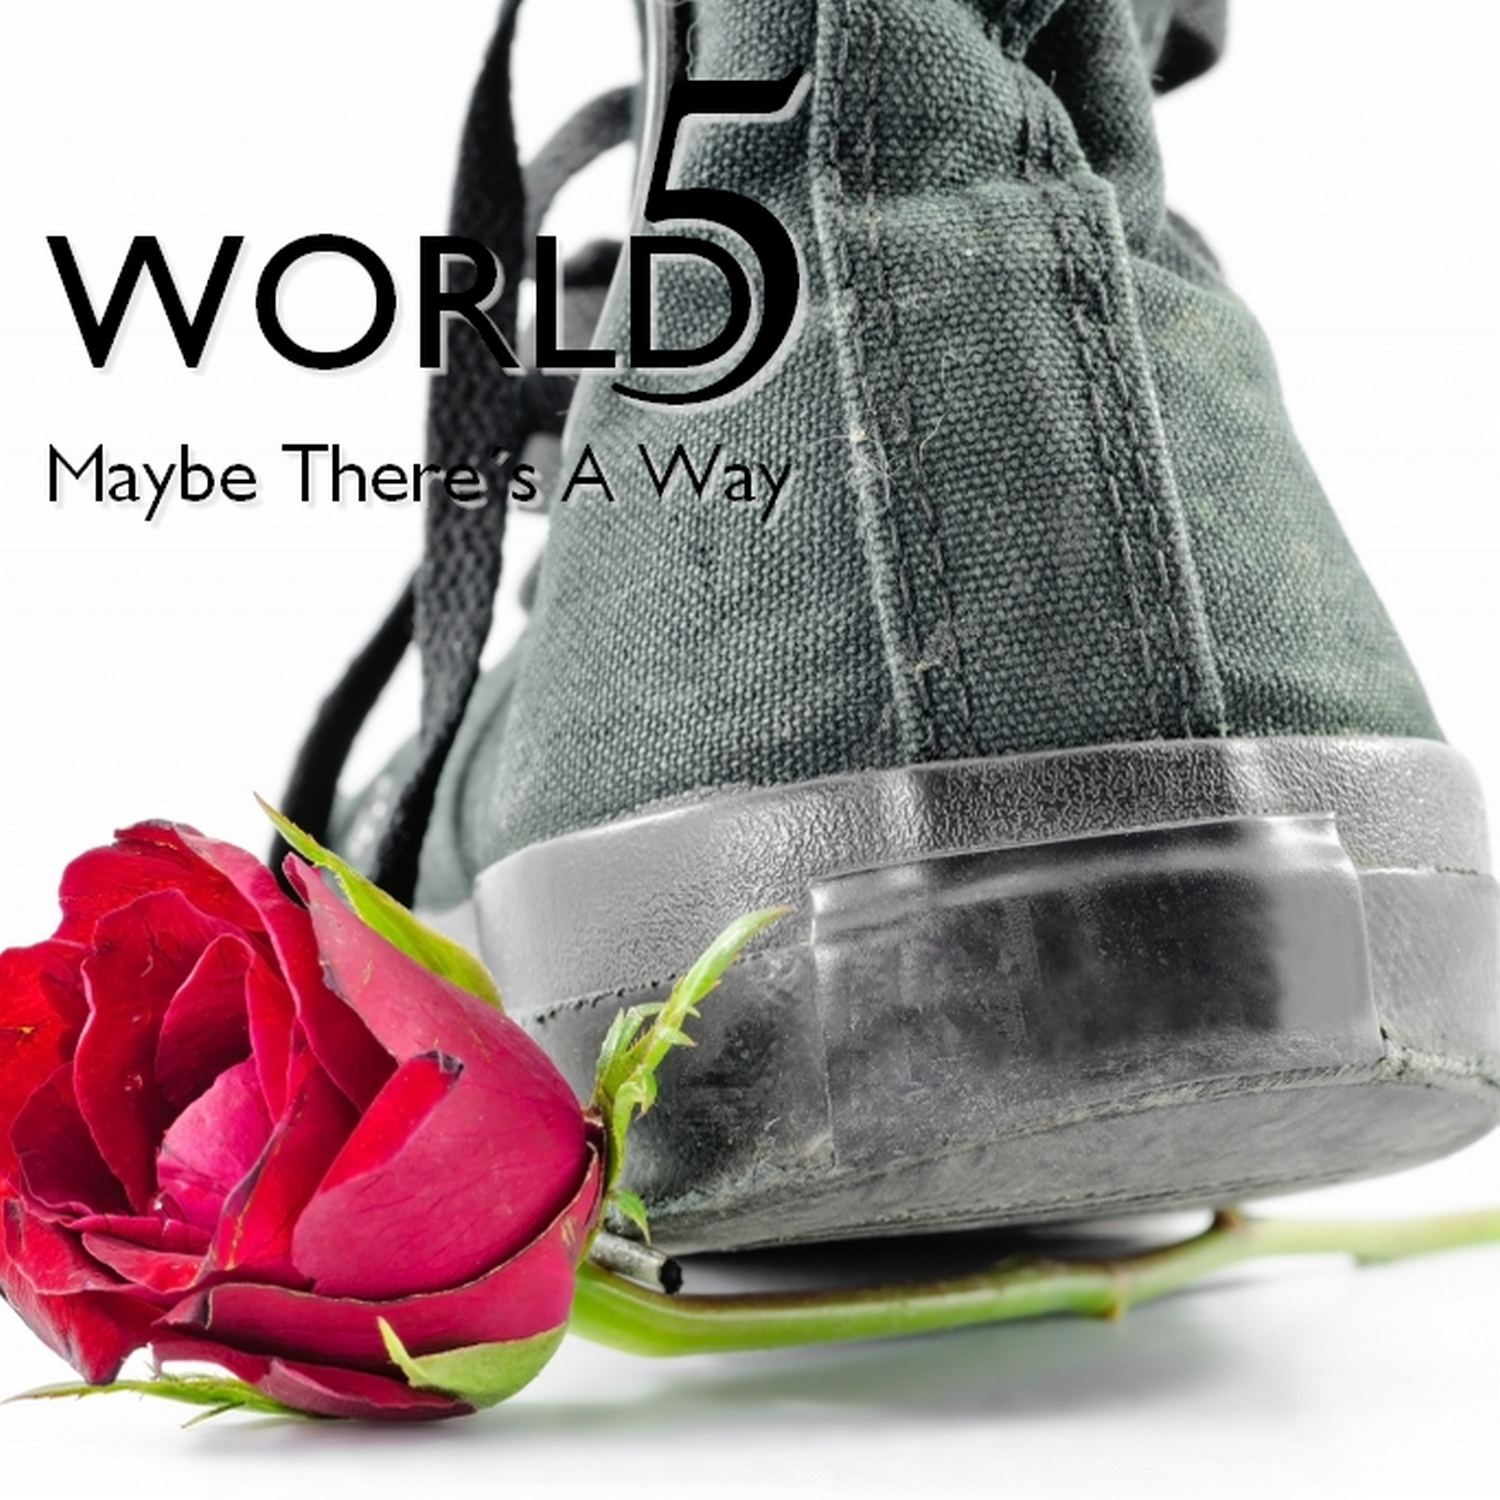 World5 - Maybe There's A Way (Single)